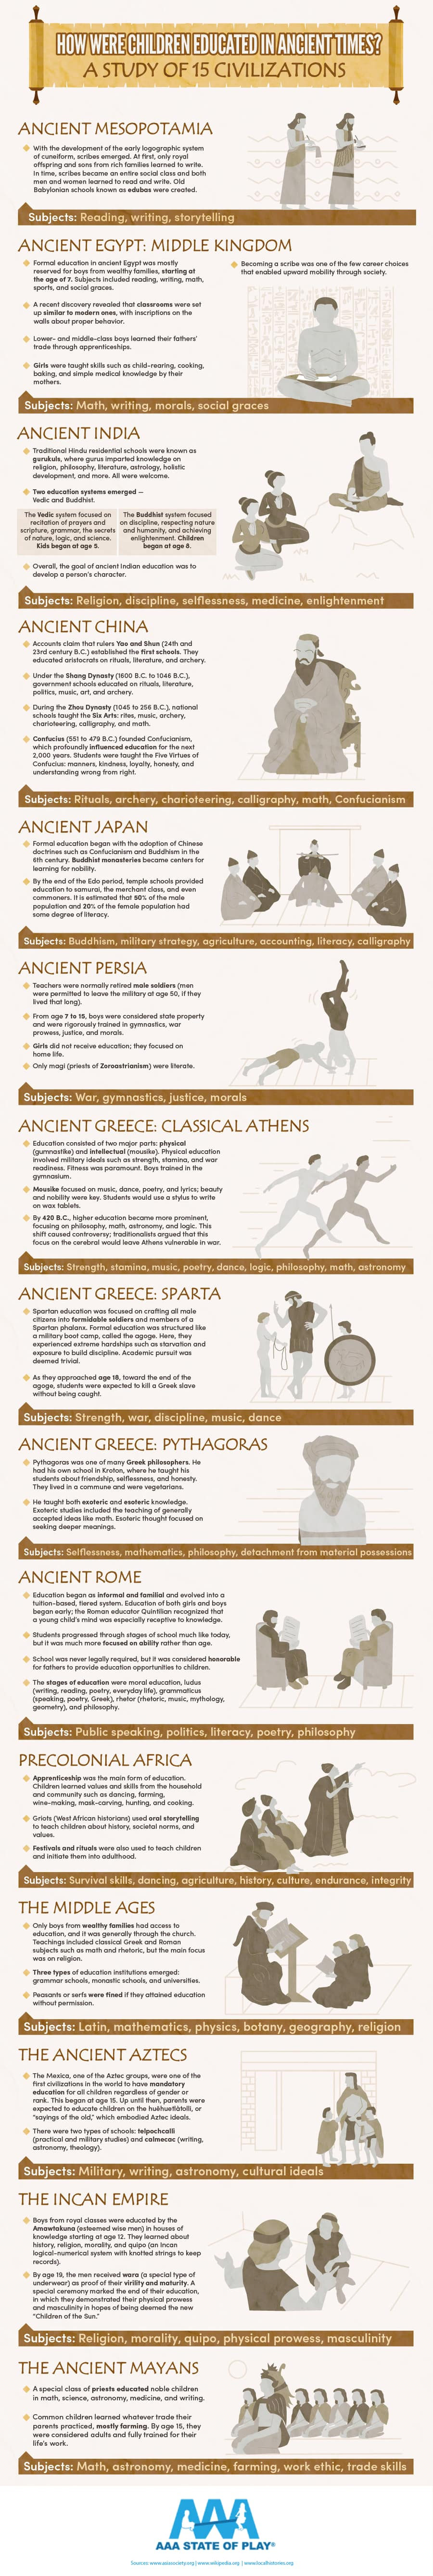 How Children Were Educated in Ancient Times Infographic